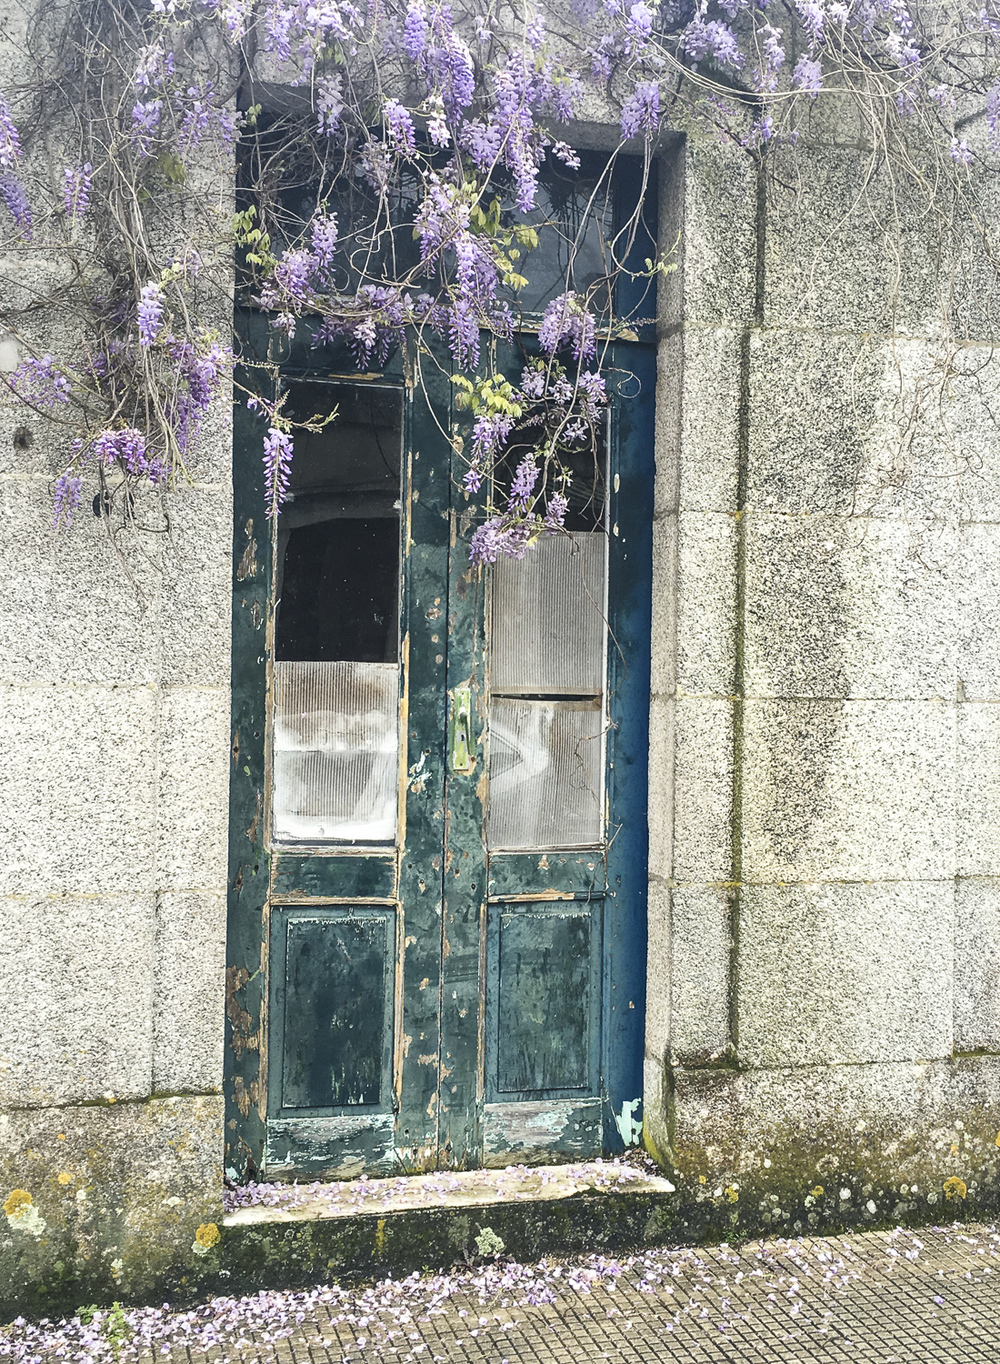 Yet more wisteria, doorway in Tui